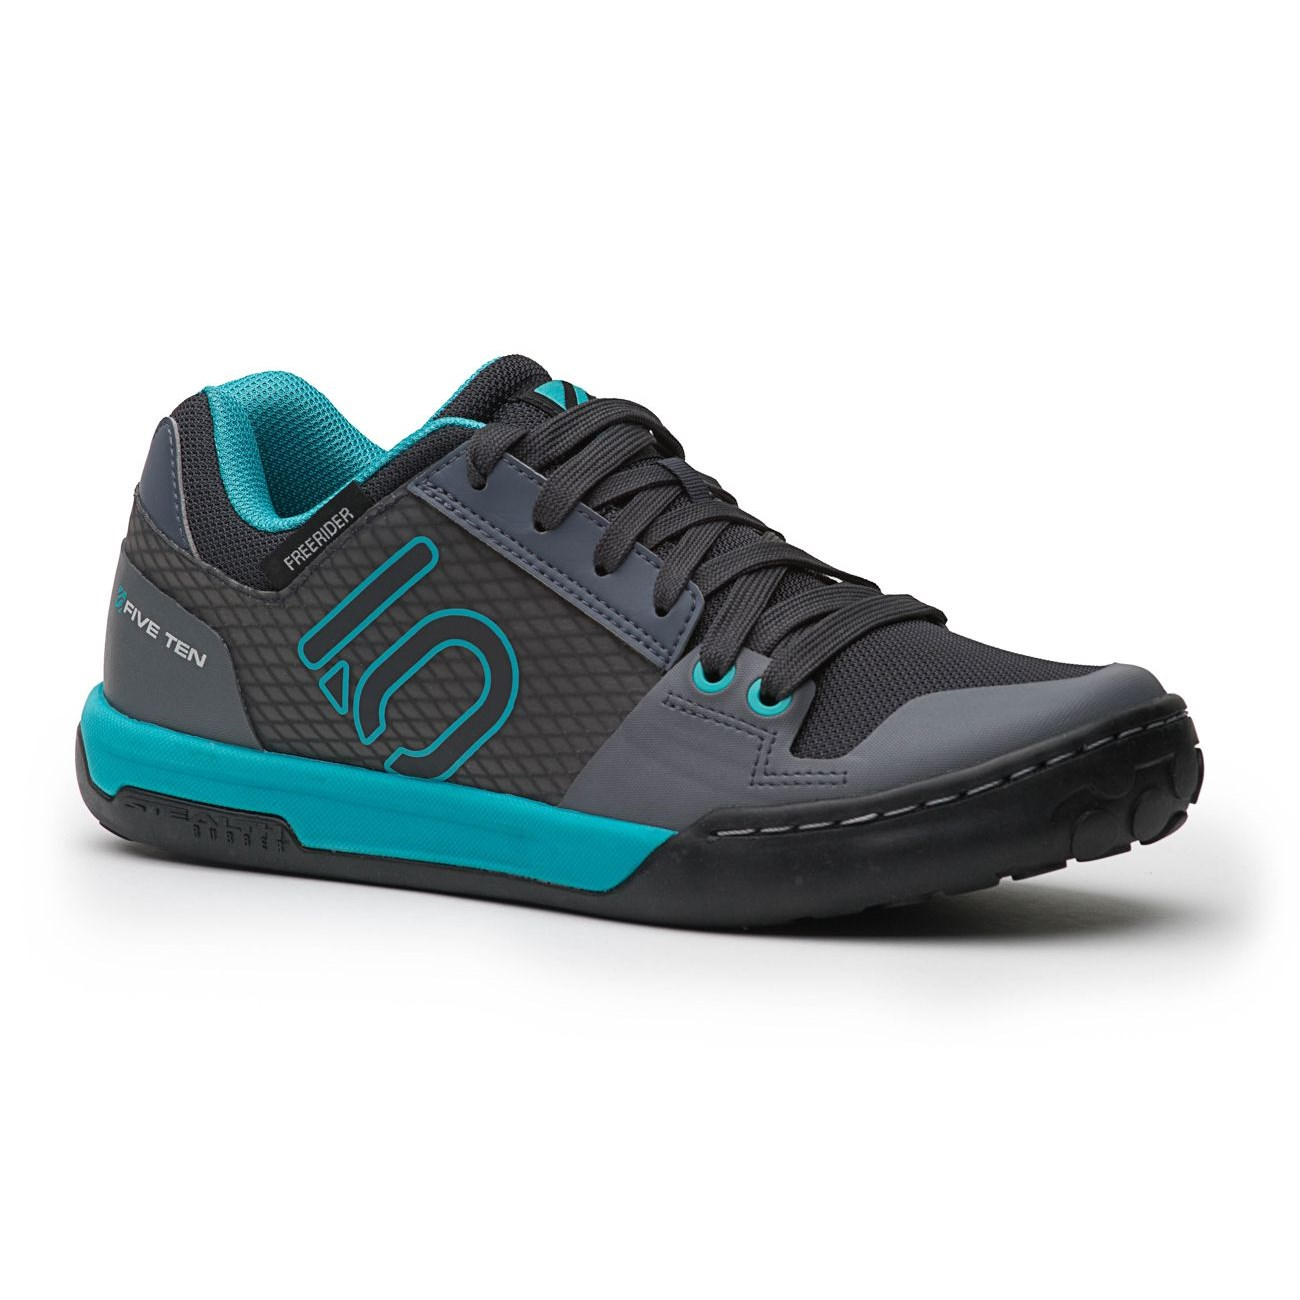 ee98a800dd3 Five Ten Freerider Contact Shoes - Women s